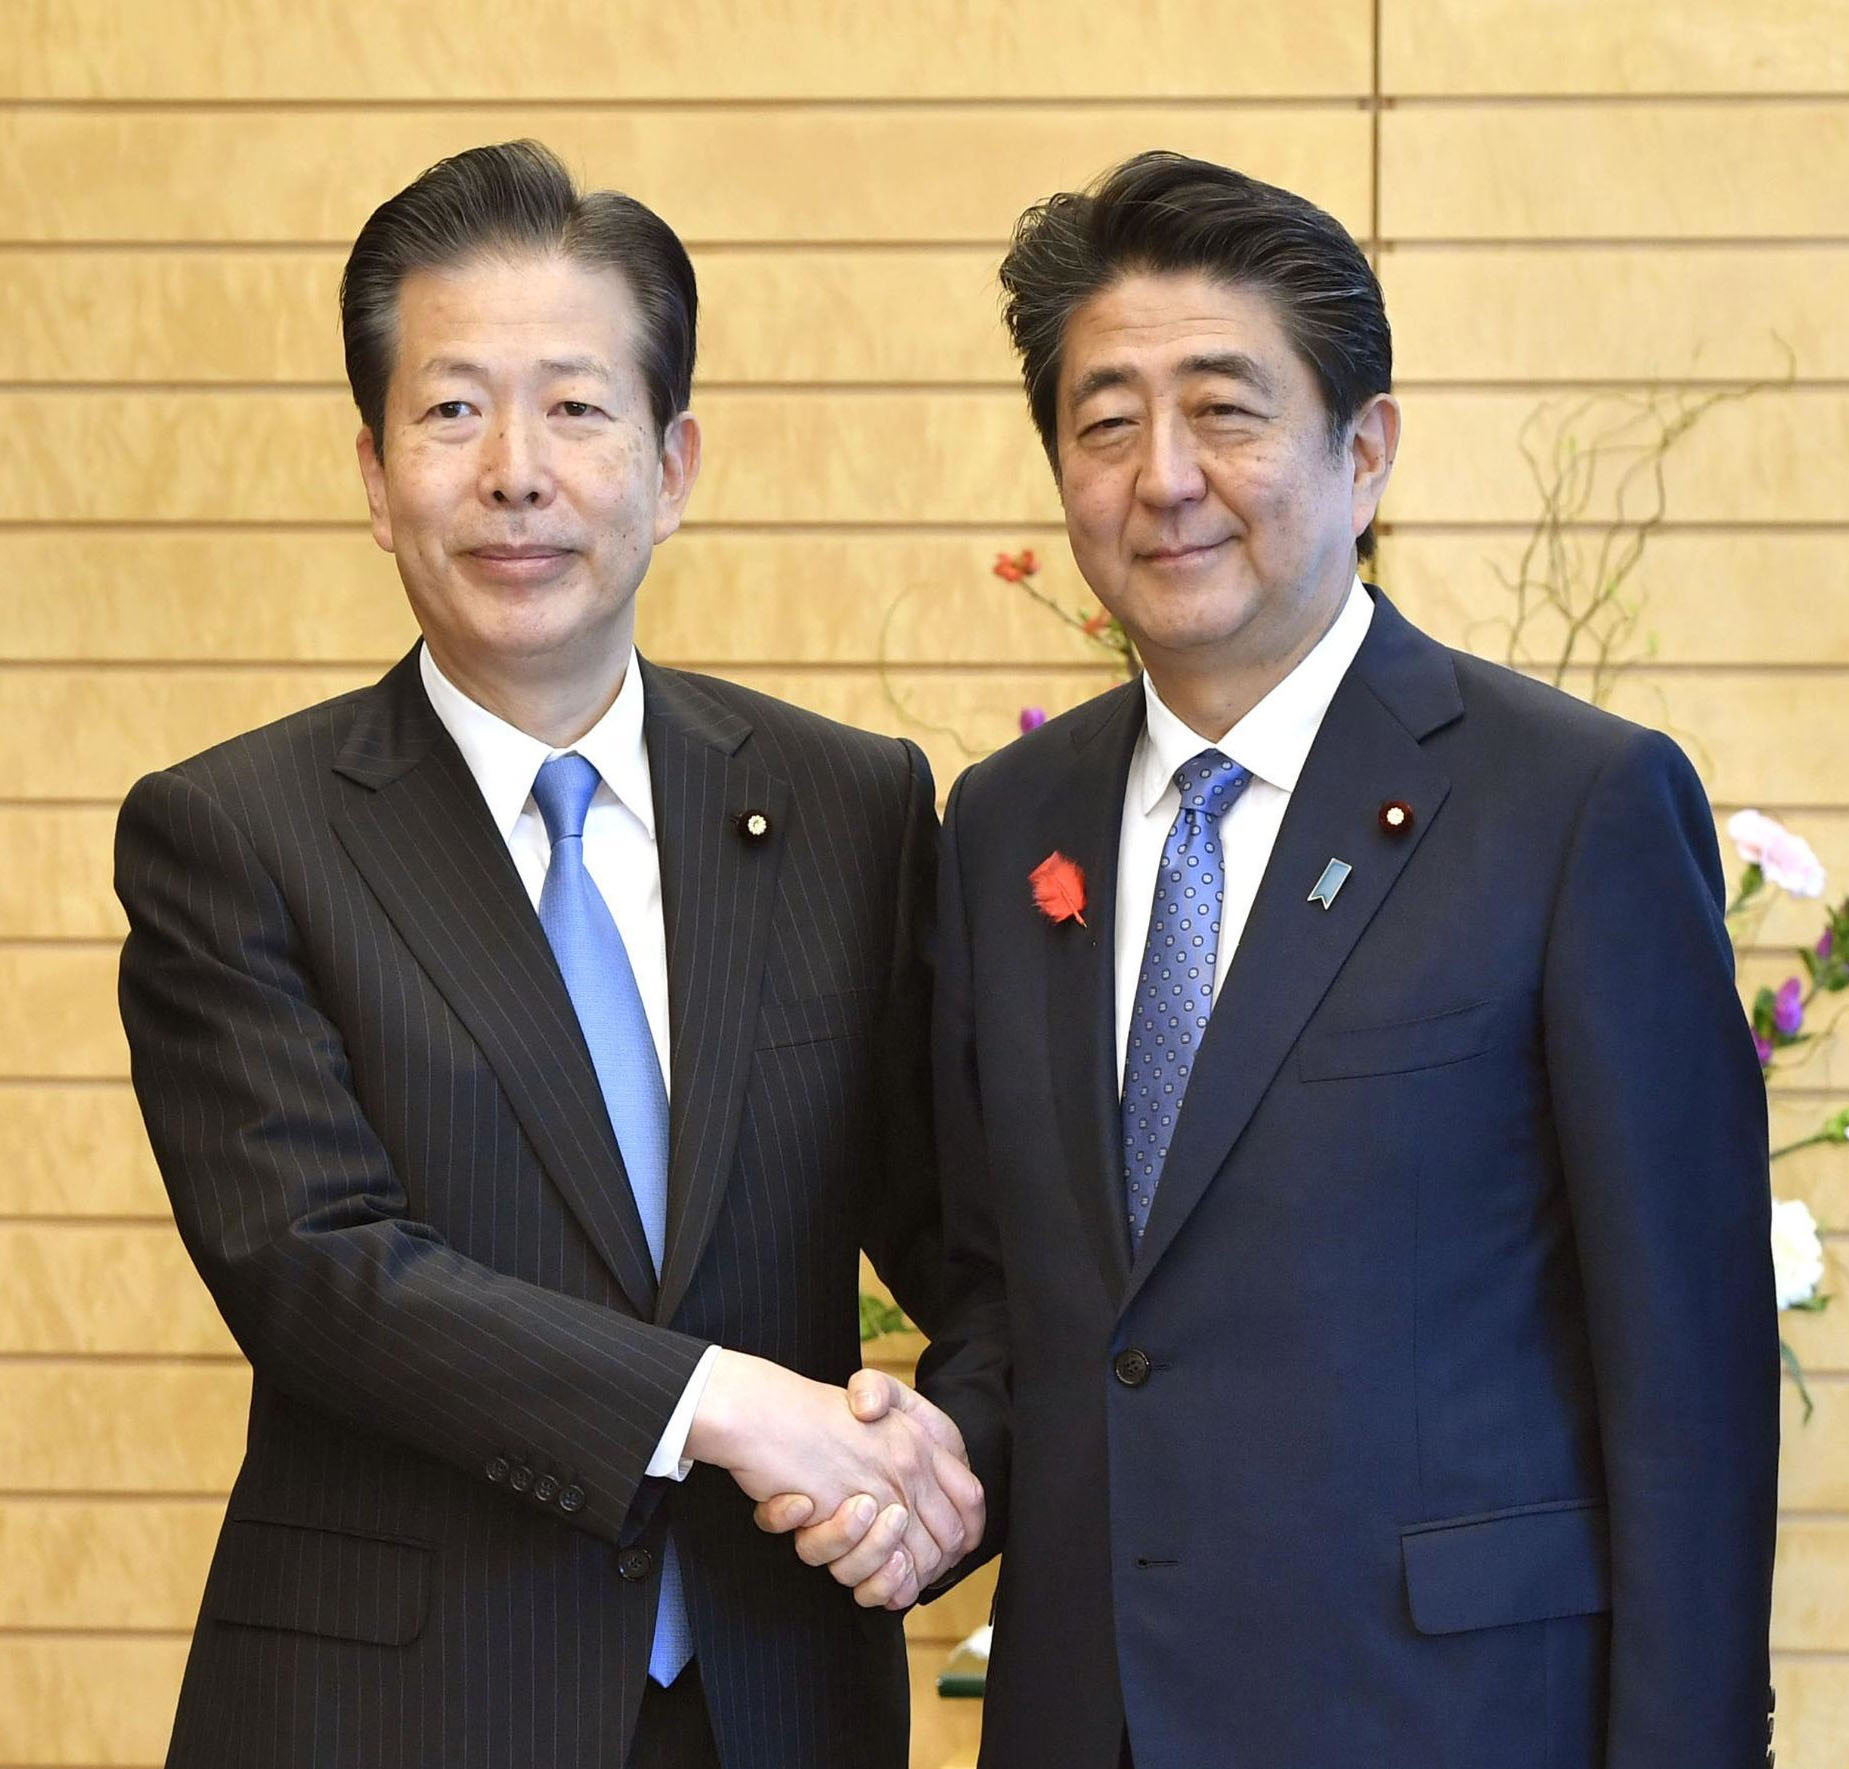 Komeito President Natsuo Yamaguchi and Prime Minister Shinzo Abe pose in this file photo. Two decades after forming a coalition, the ruling Liberal Democratic Party and junior partner Komeito say their partnership has brought stability to politics.   KYODO